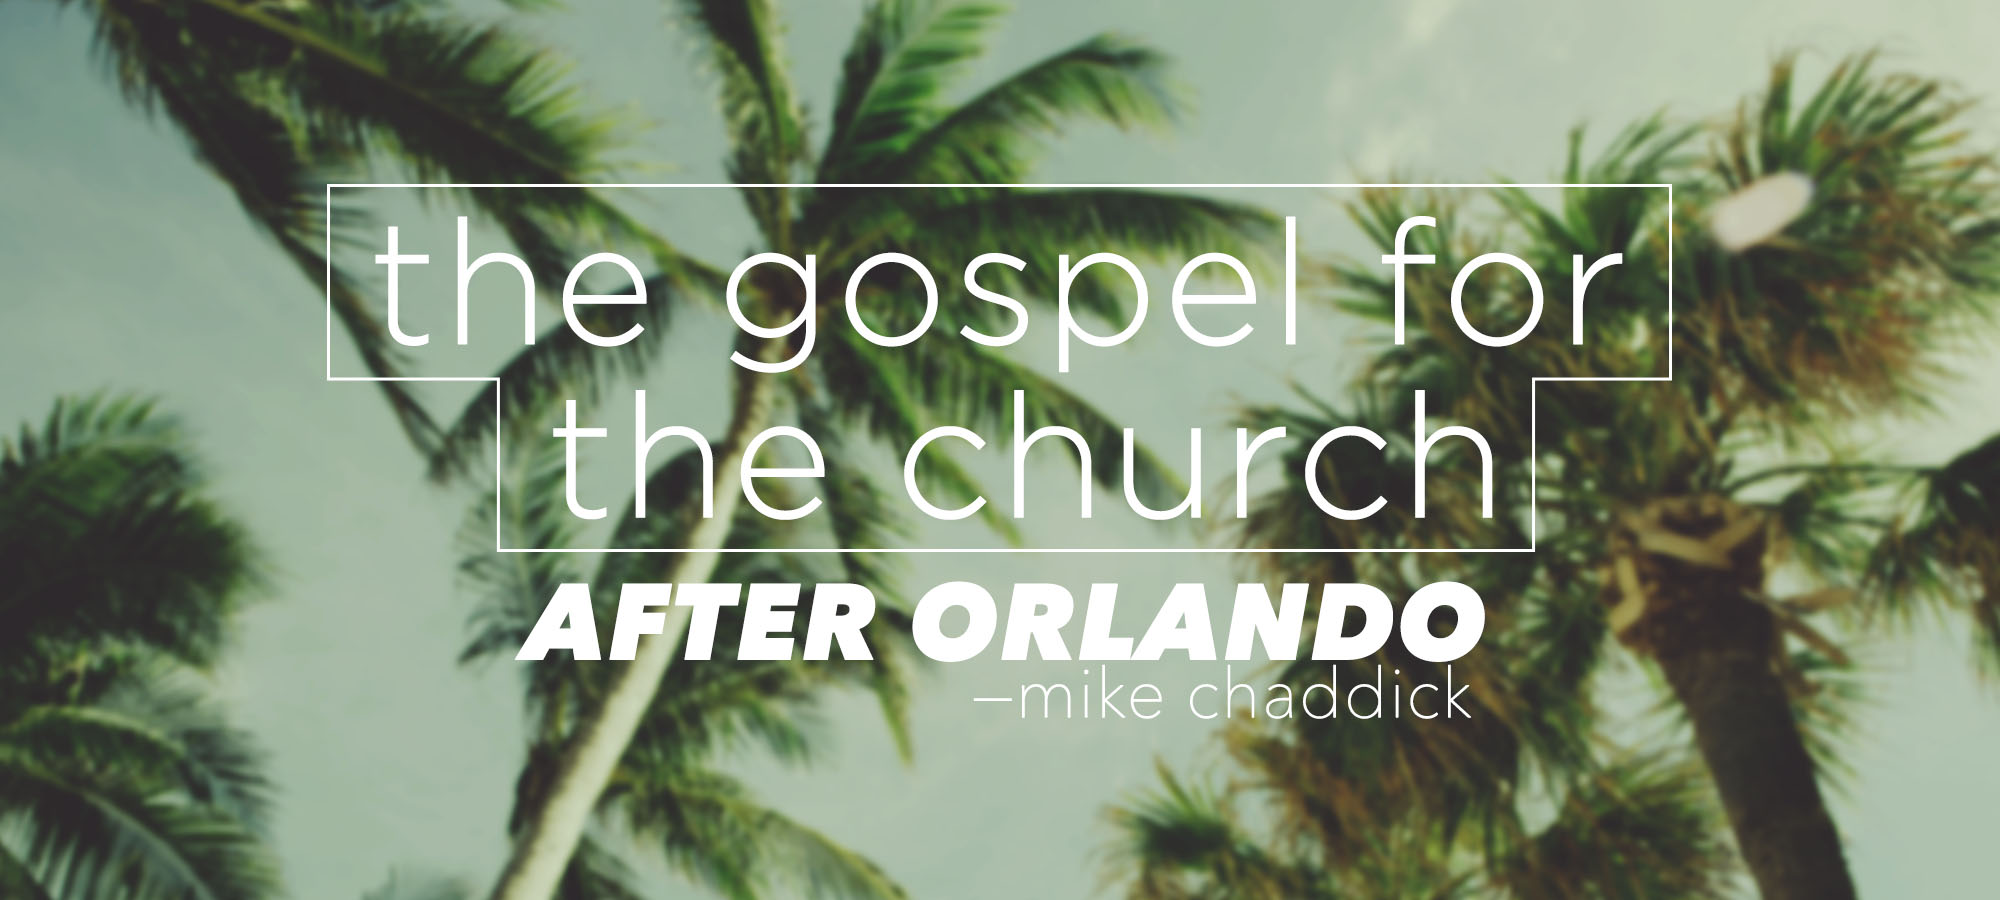 The Gospel for the Church After Orlando